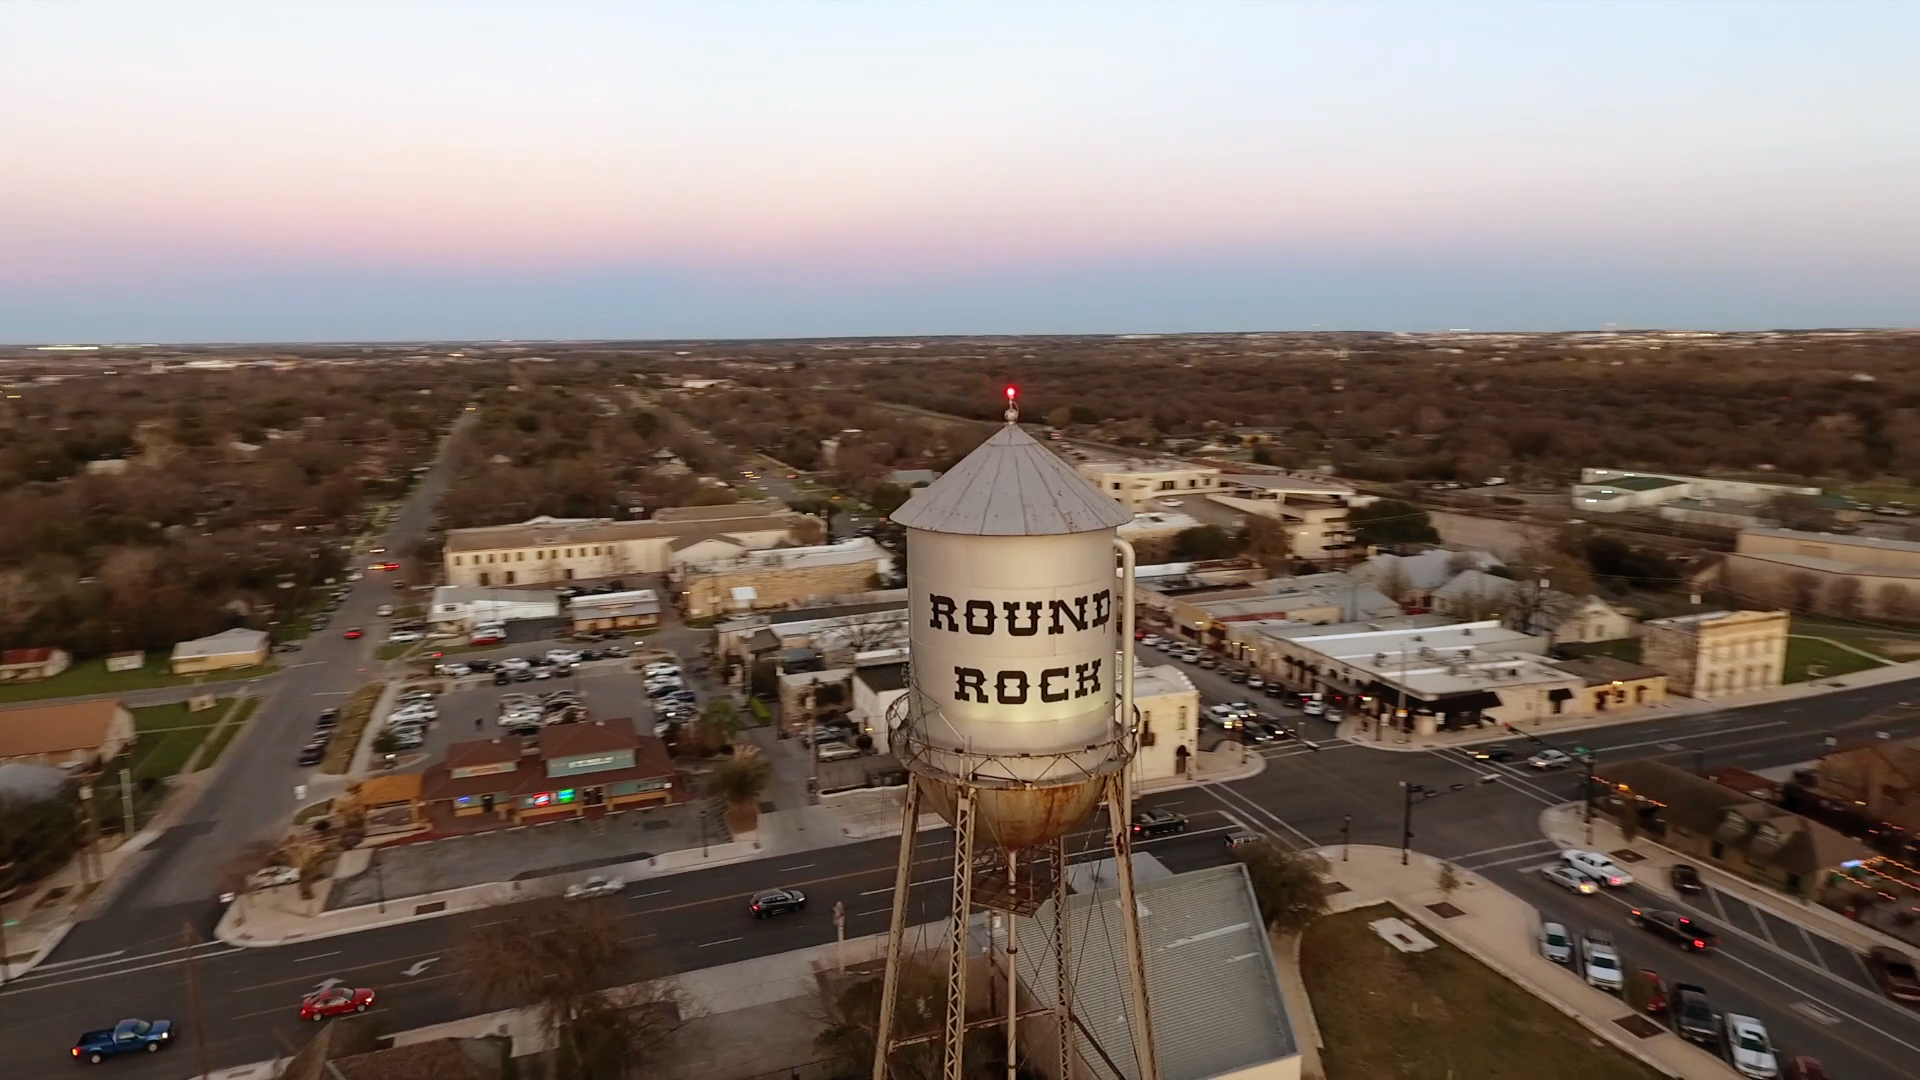 Round Rock Tower